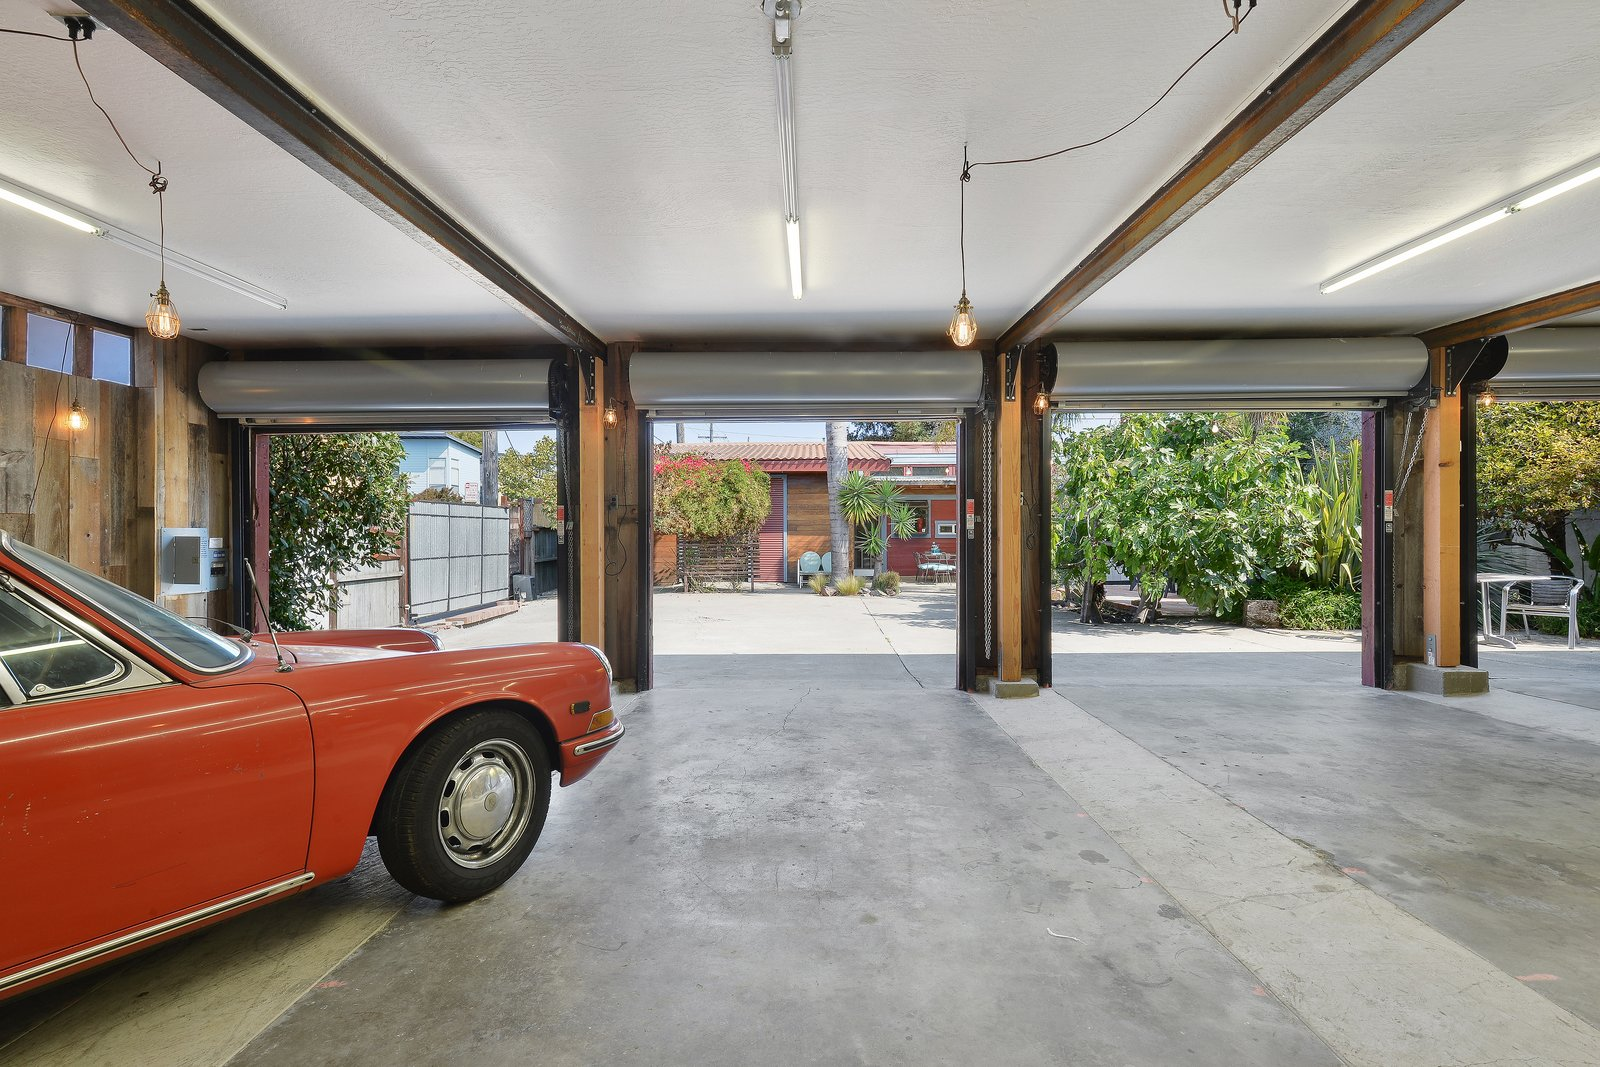 Photo 7 of 12 in Artists Need Apply: This Midcentury Home Comes With an All-Purpose Workshop for $949K